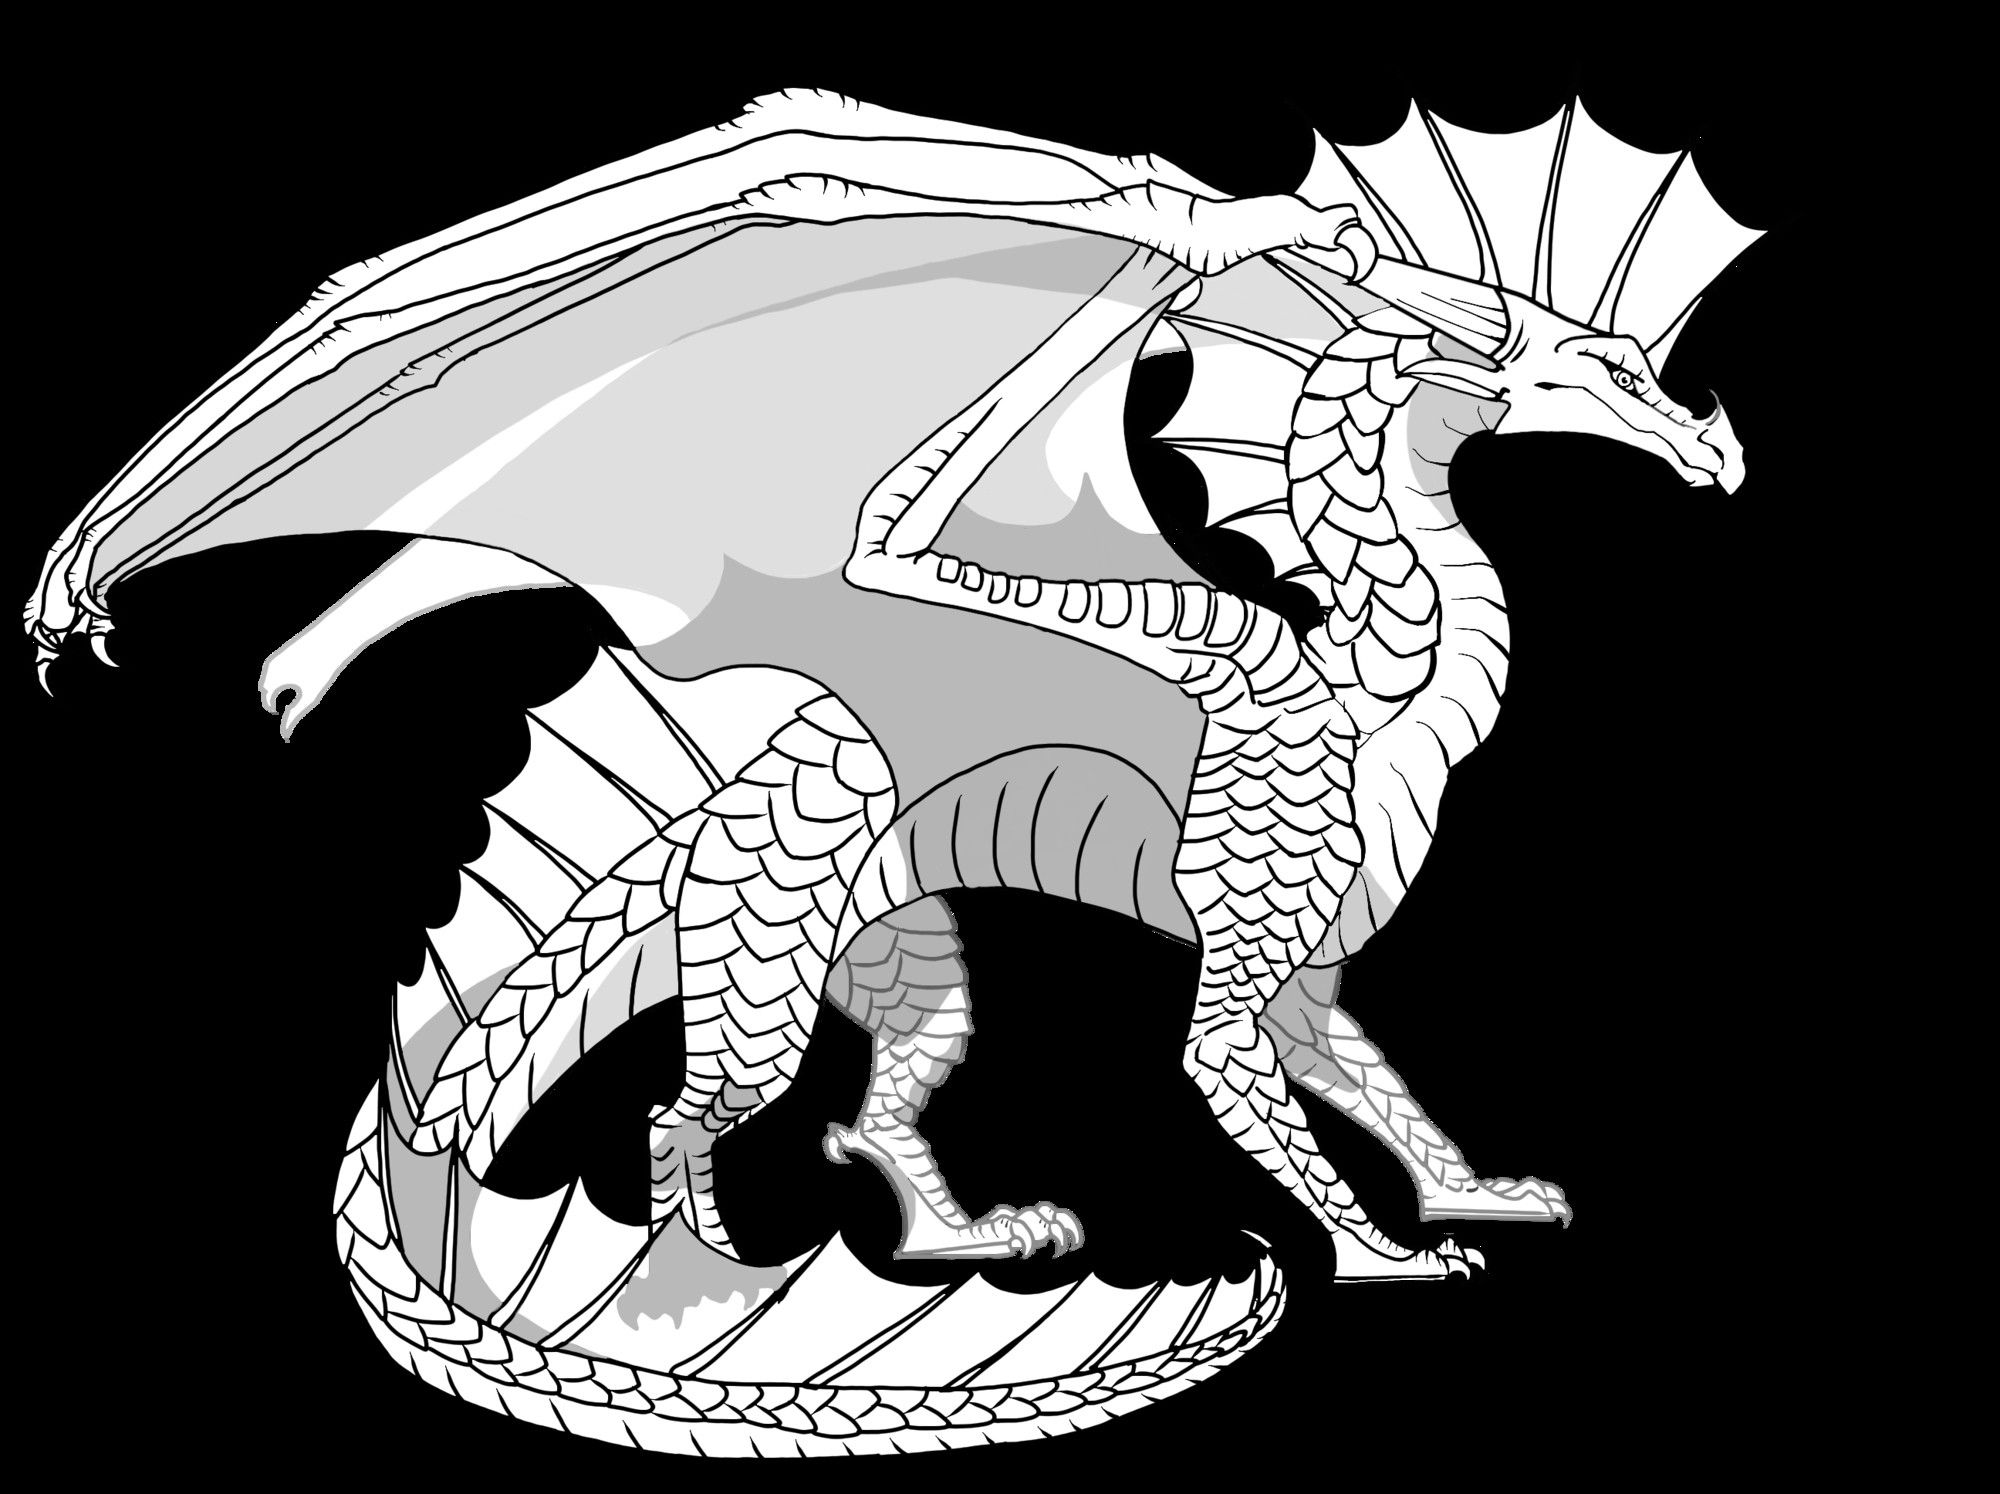 Wings Of Fire Coloring Pages Coloring Pages Wings Of Fire Coloring Pages Wiim Page Washer Repair Panda Mini Whirlpool Direct Dri Wings Of Fire Wings Dragon Art